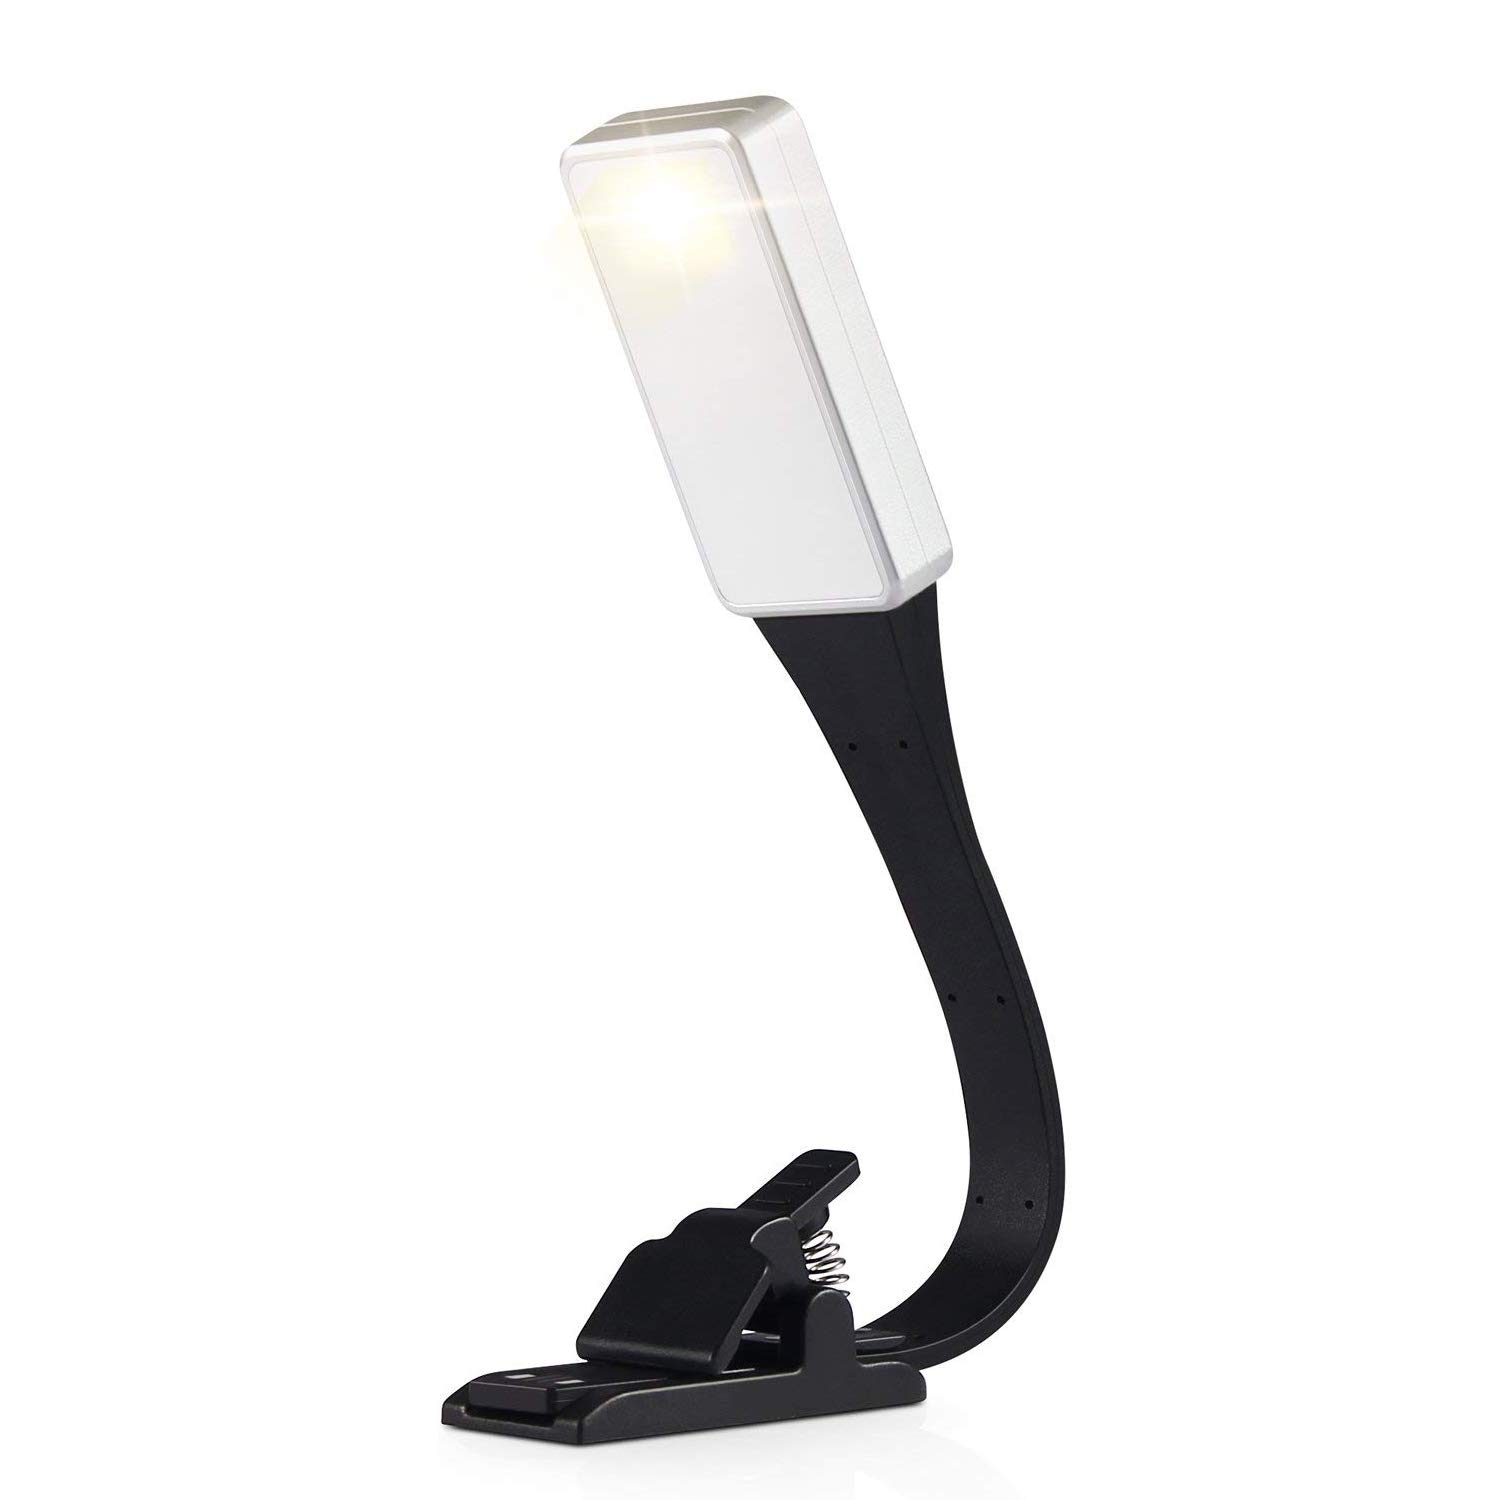 Book Light, MAIAGO LED Reading Lights, 3-Level Brightness (Cool and Warm) Adjustable Color Temperature, USB Rechargeable, Eye Protection Brightness, Easy Clip on Kindle, iPad & Book & More